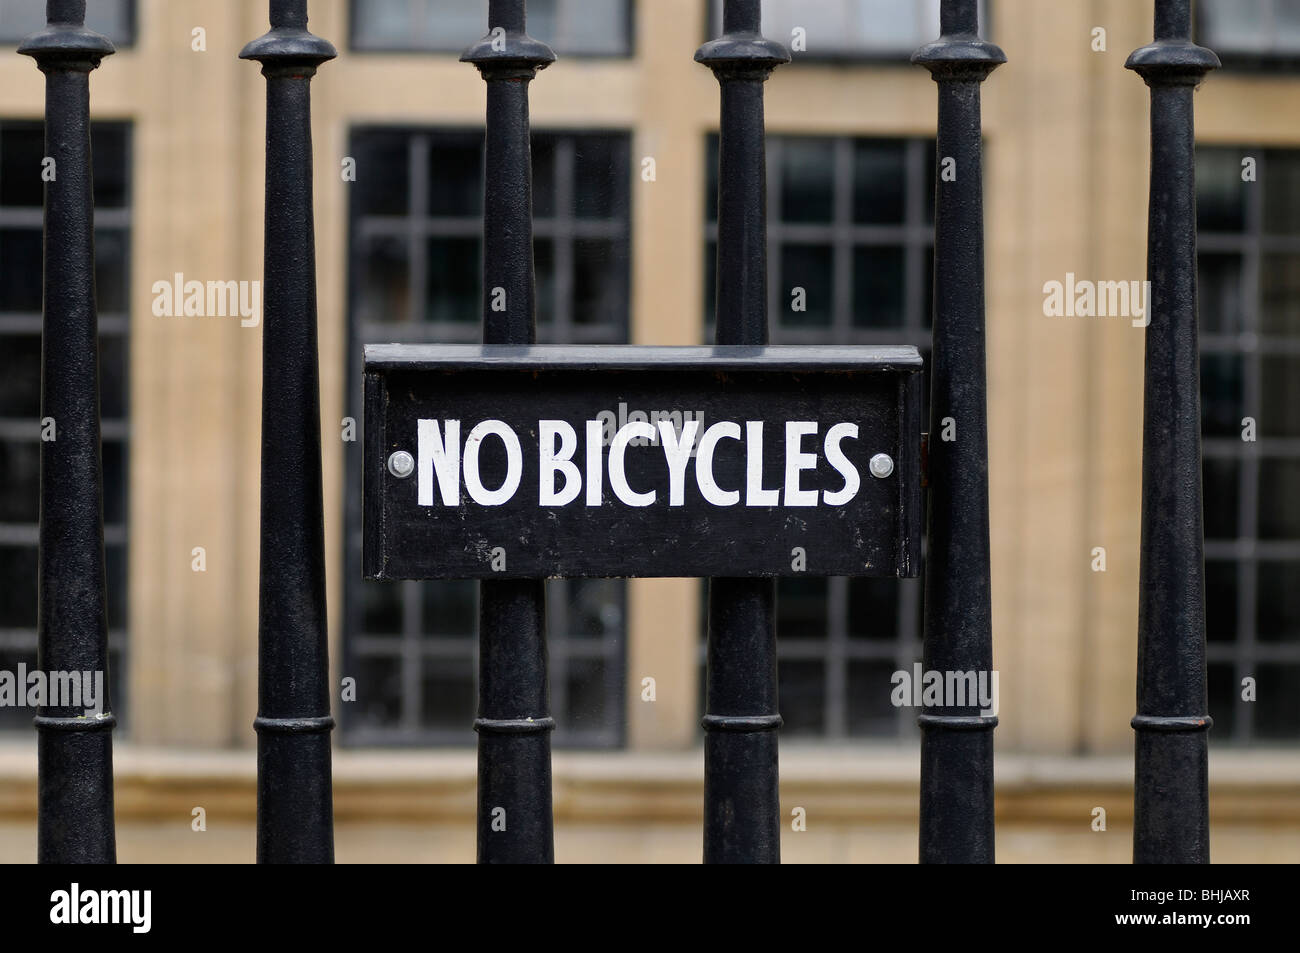 No Bicycles Sign on Railings Outside a University Building, Oxford, United Kingdom. - Stock Image